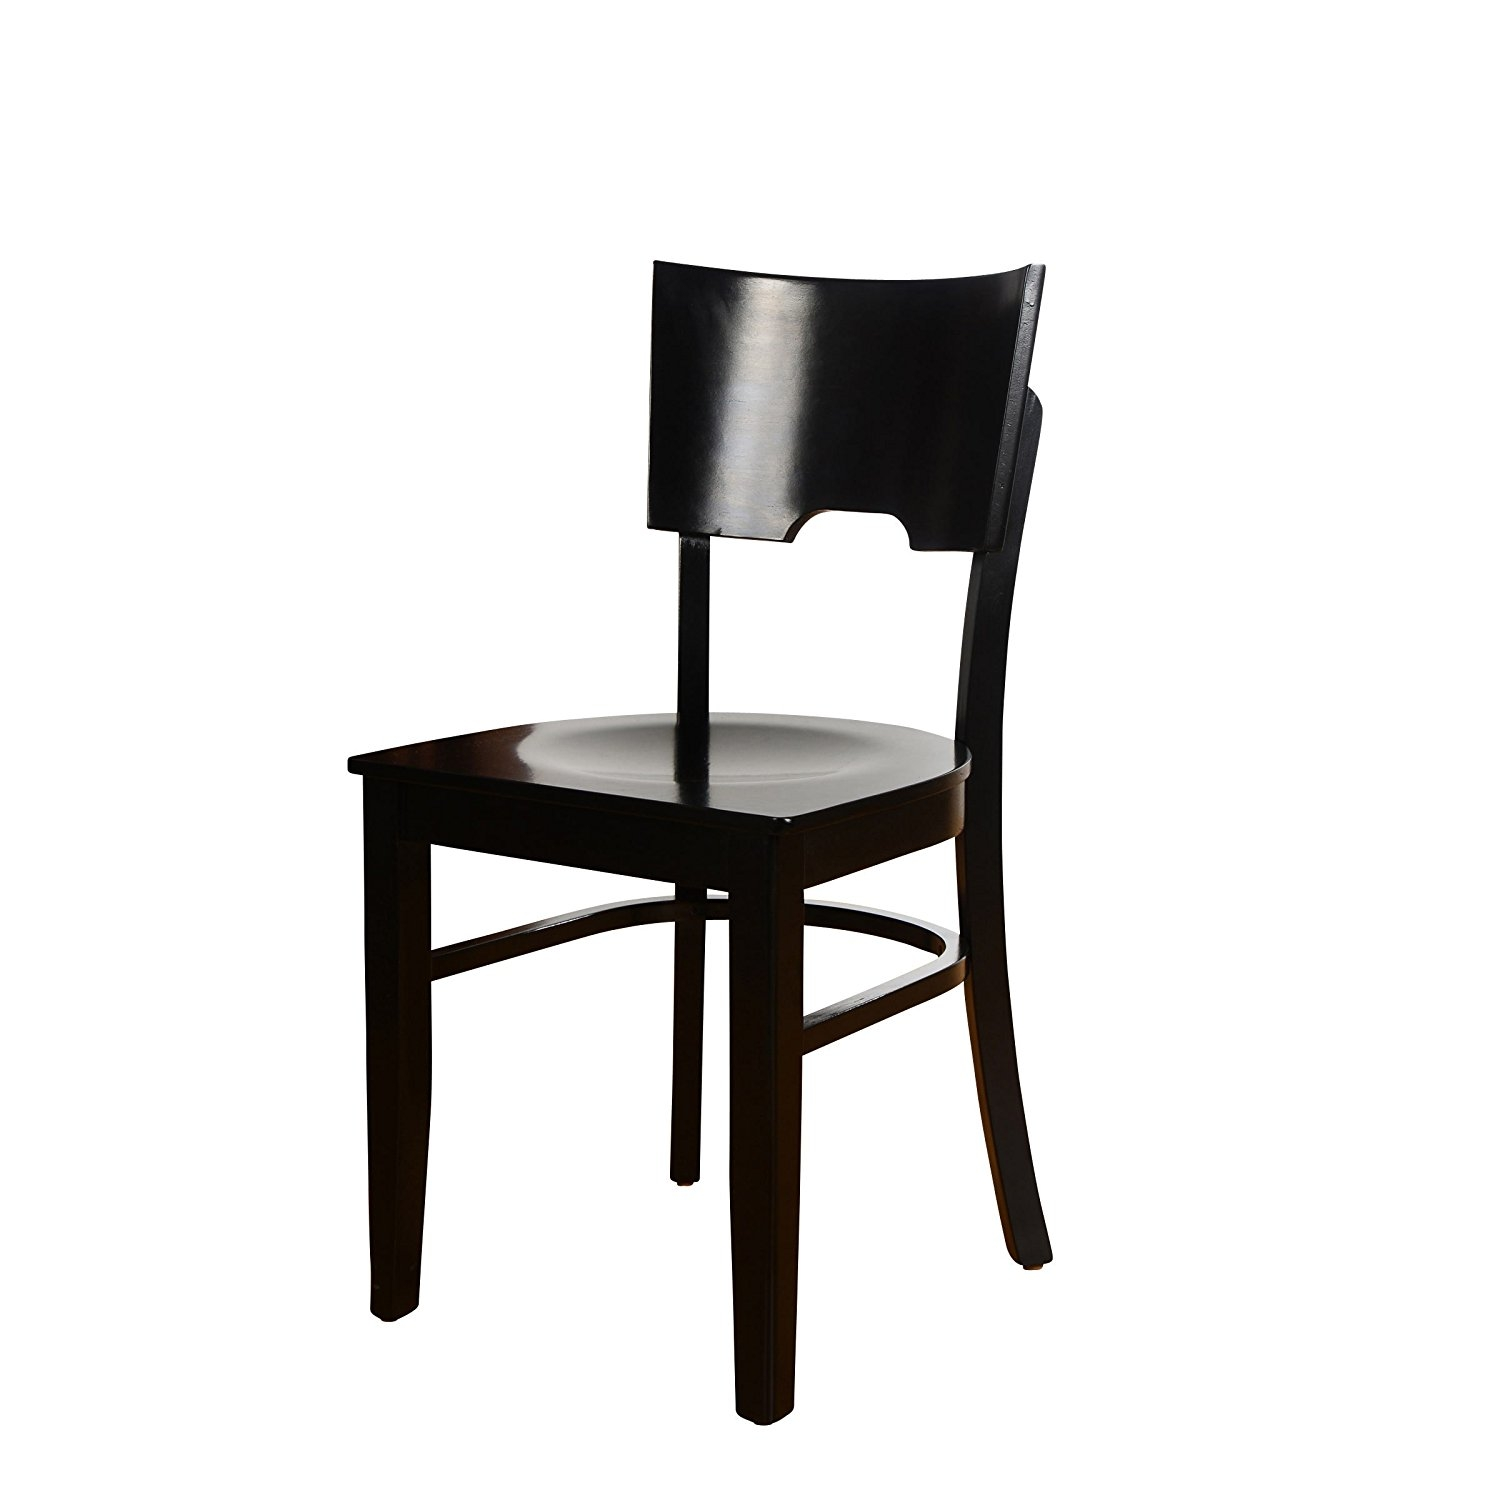 Beechwood Mountain BSD-11SW-W Solid Beech Wood Side Chairs in Walnut with Wood Seat for Kitchen & Dining, Set of 2 by Beechwood Mountain LLC